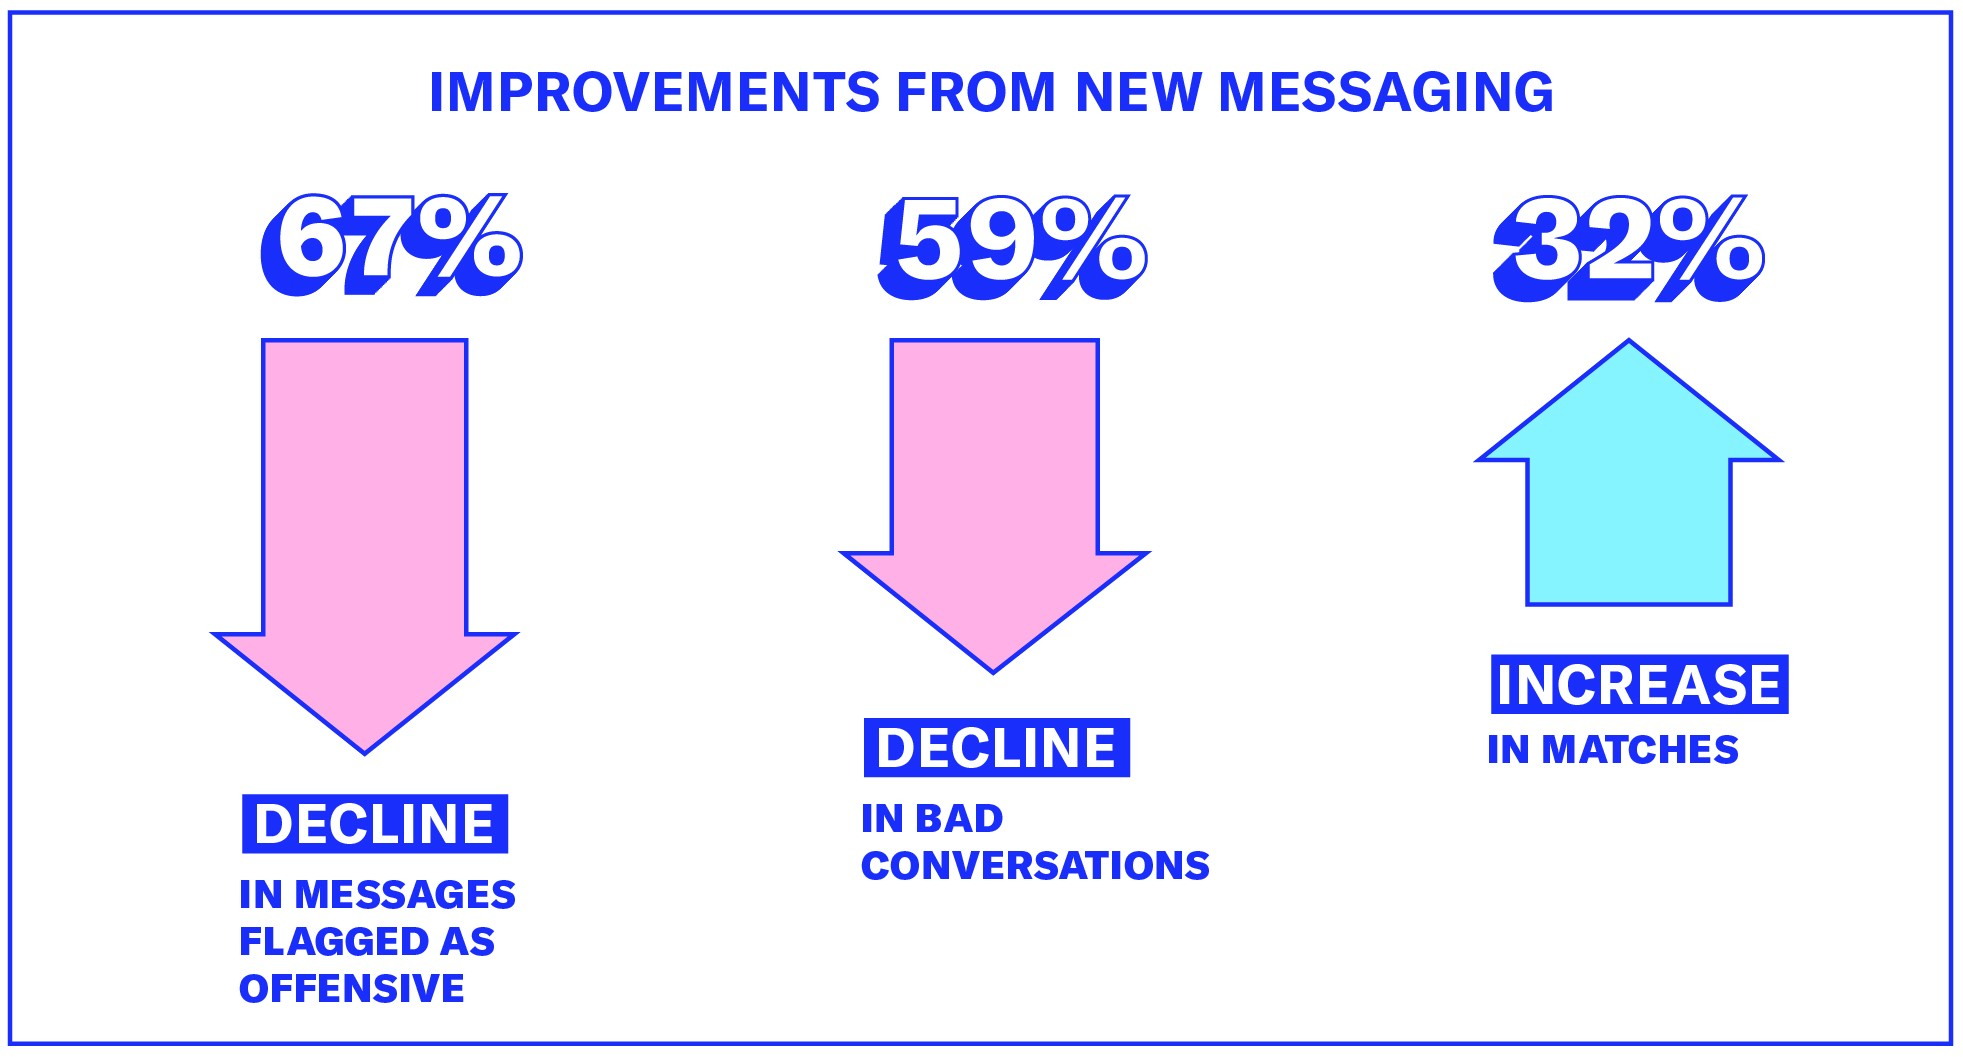 Why OkCupid is changing how you message - The OkCupid Blog